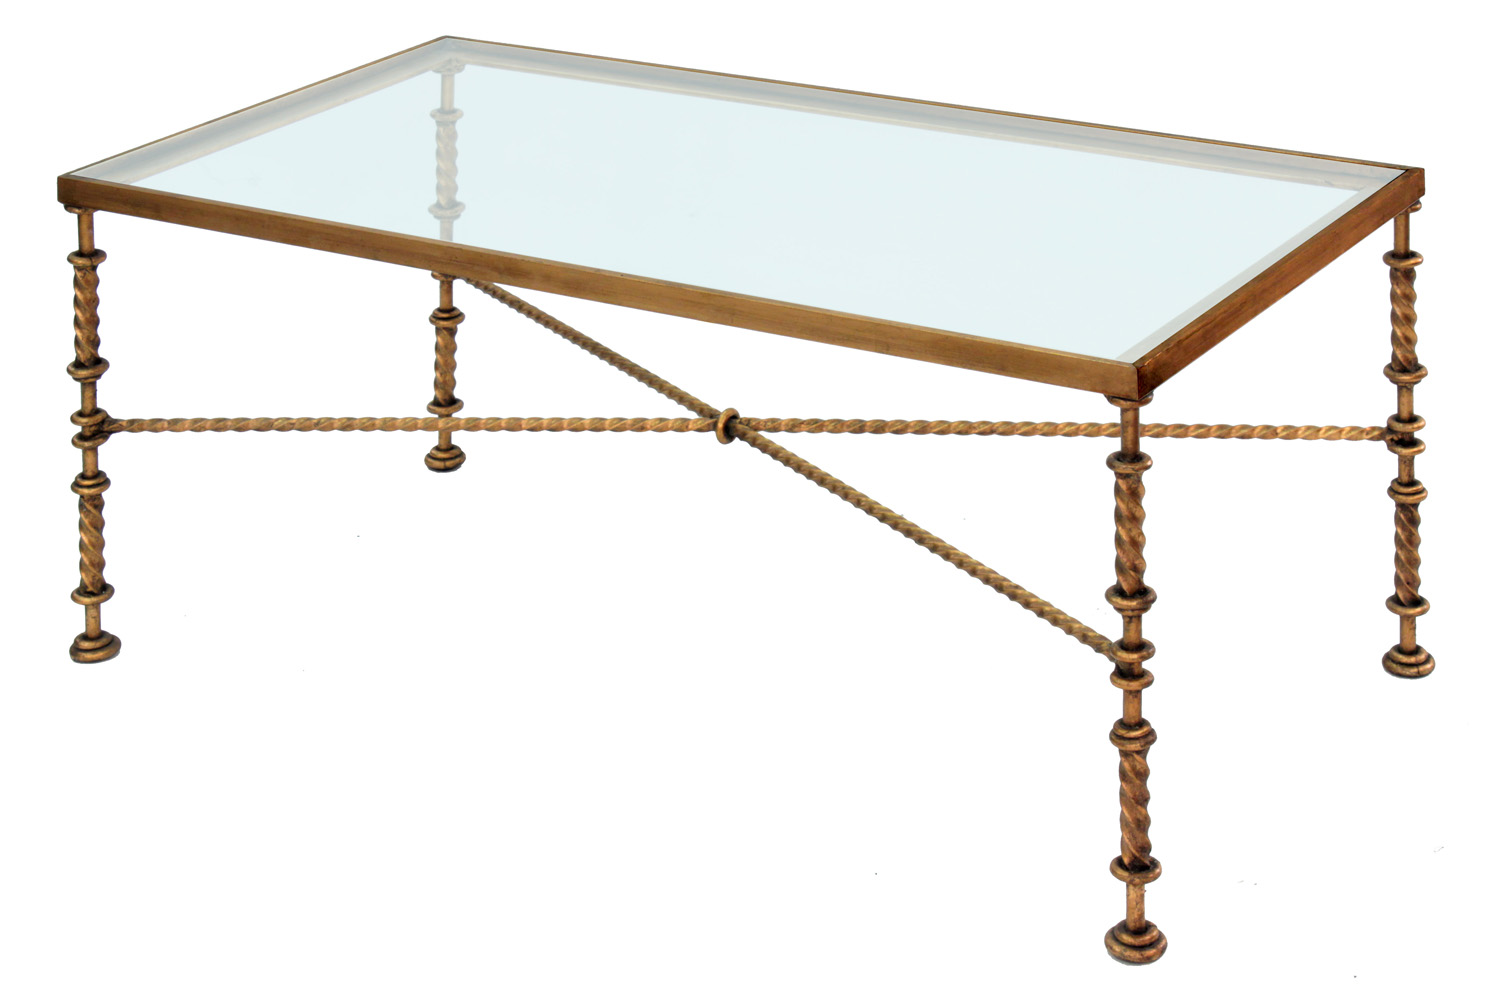 70s 75 twisted bronze stretchers coffeetable353 hires.jpg